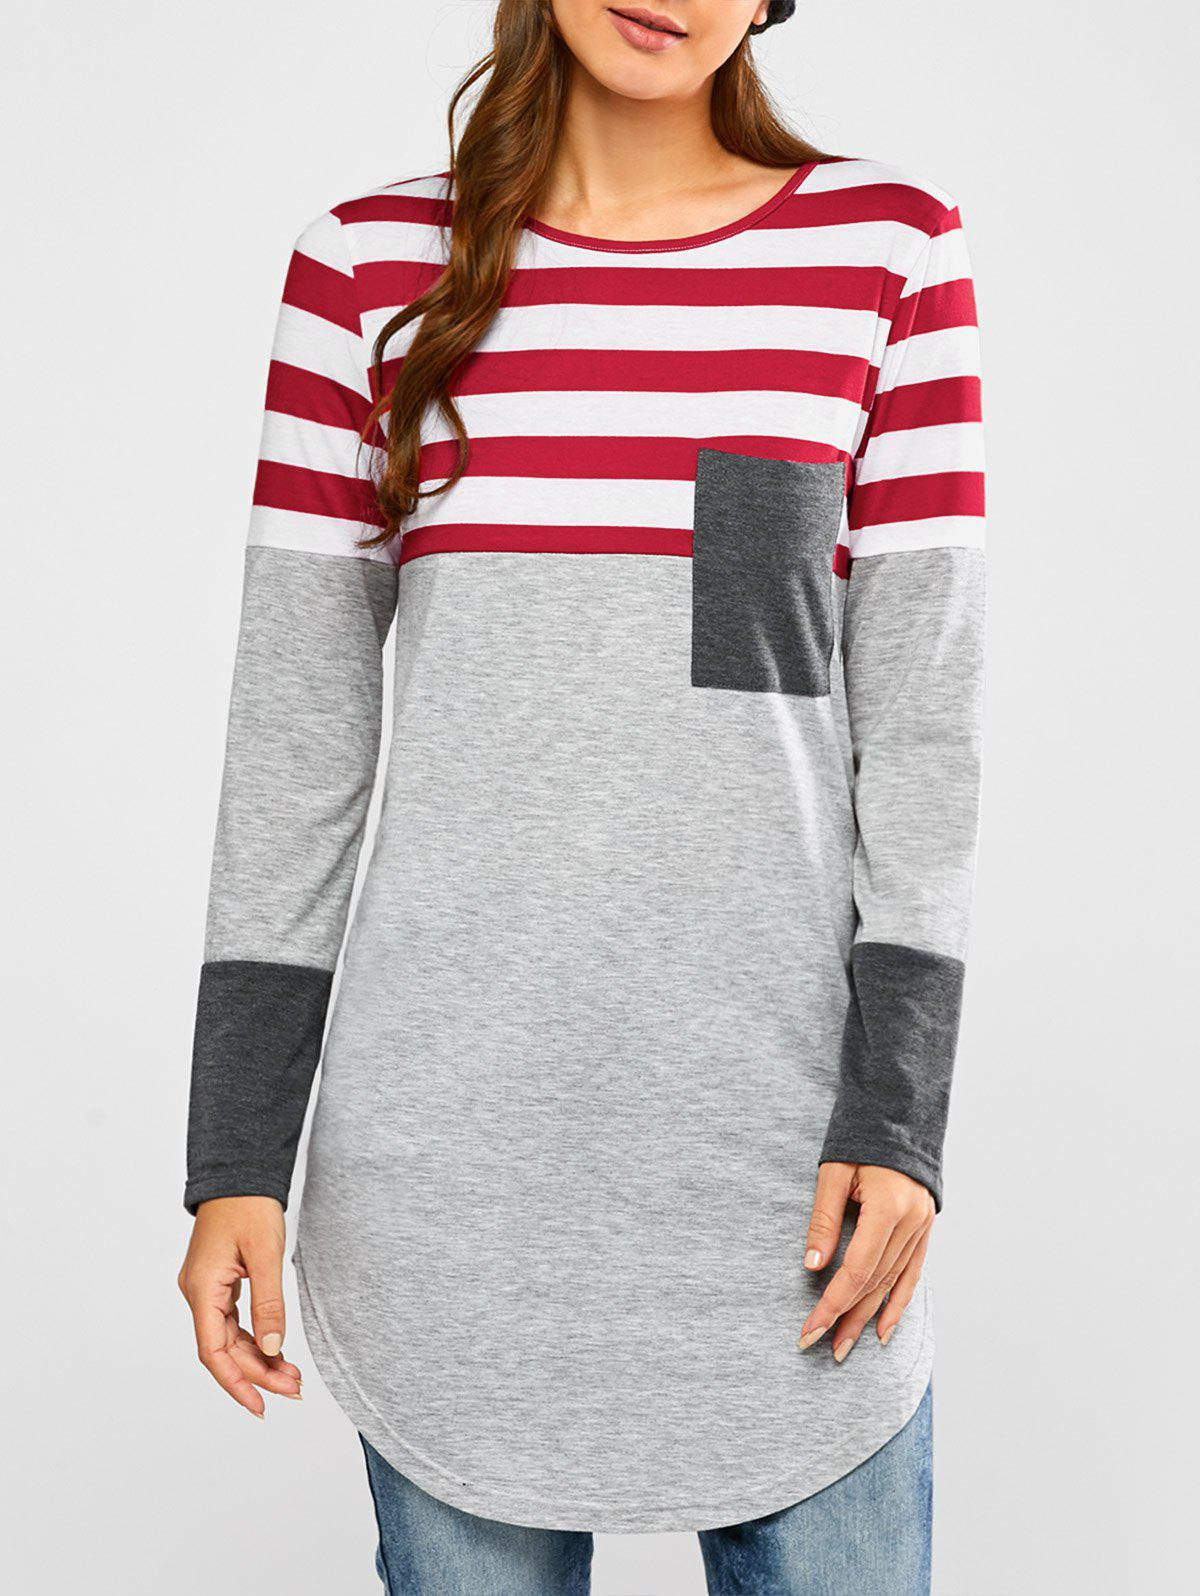 Striped Insert Longline Tee - GRAY/RED M